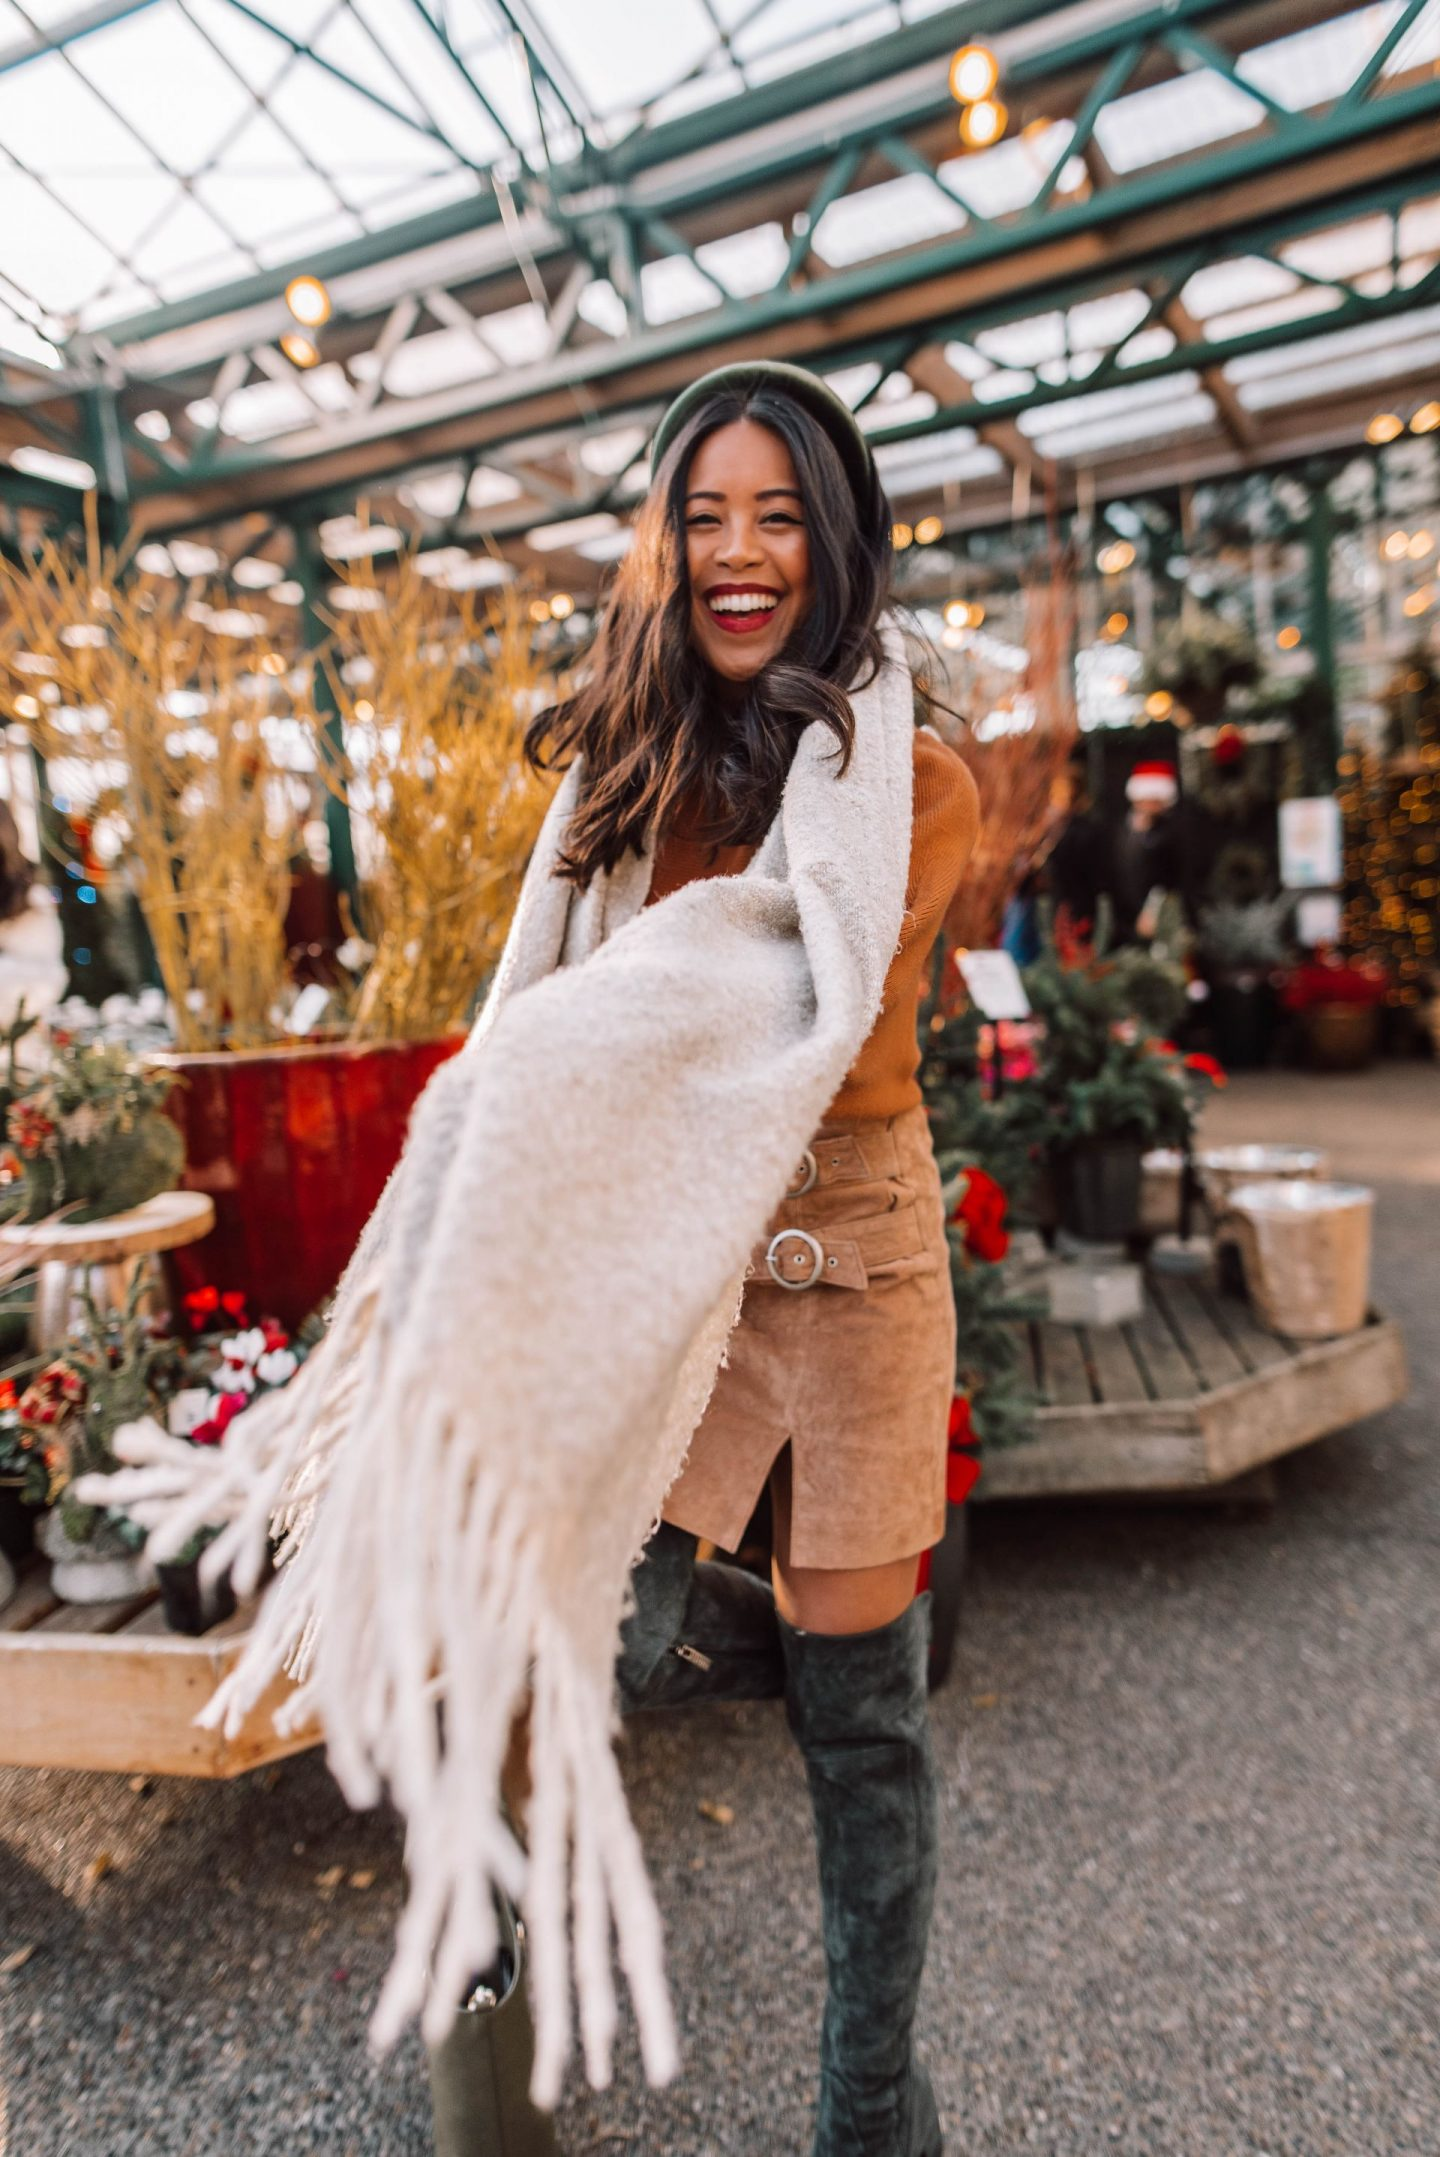 winter photo ideas - winter photo ideas Instagram – winter photo shoot – winter photo outfits - winter photo shoot ideas for women – Winter outfit ideas - winter outfit ideas for women casual